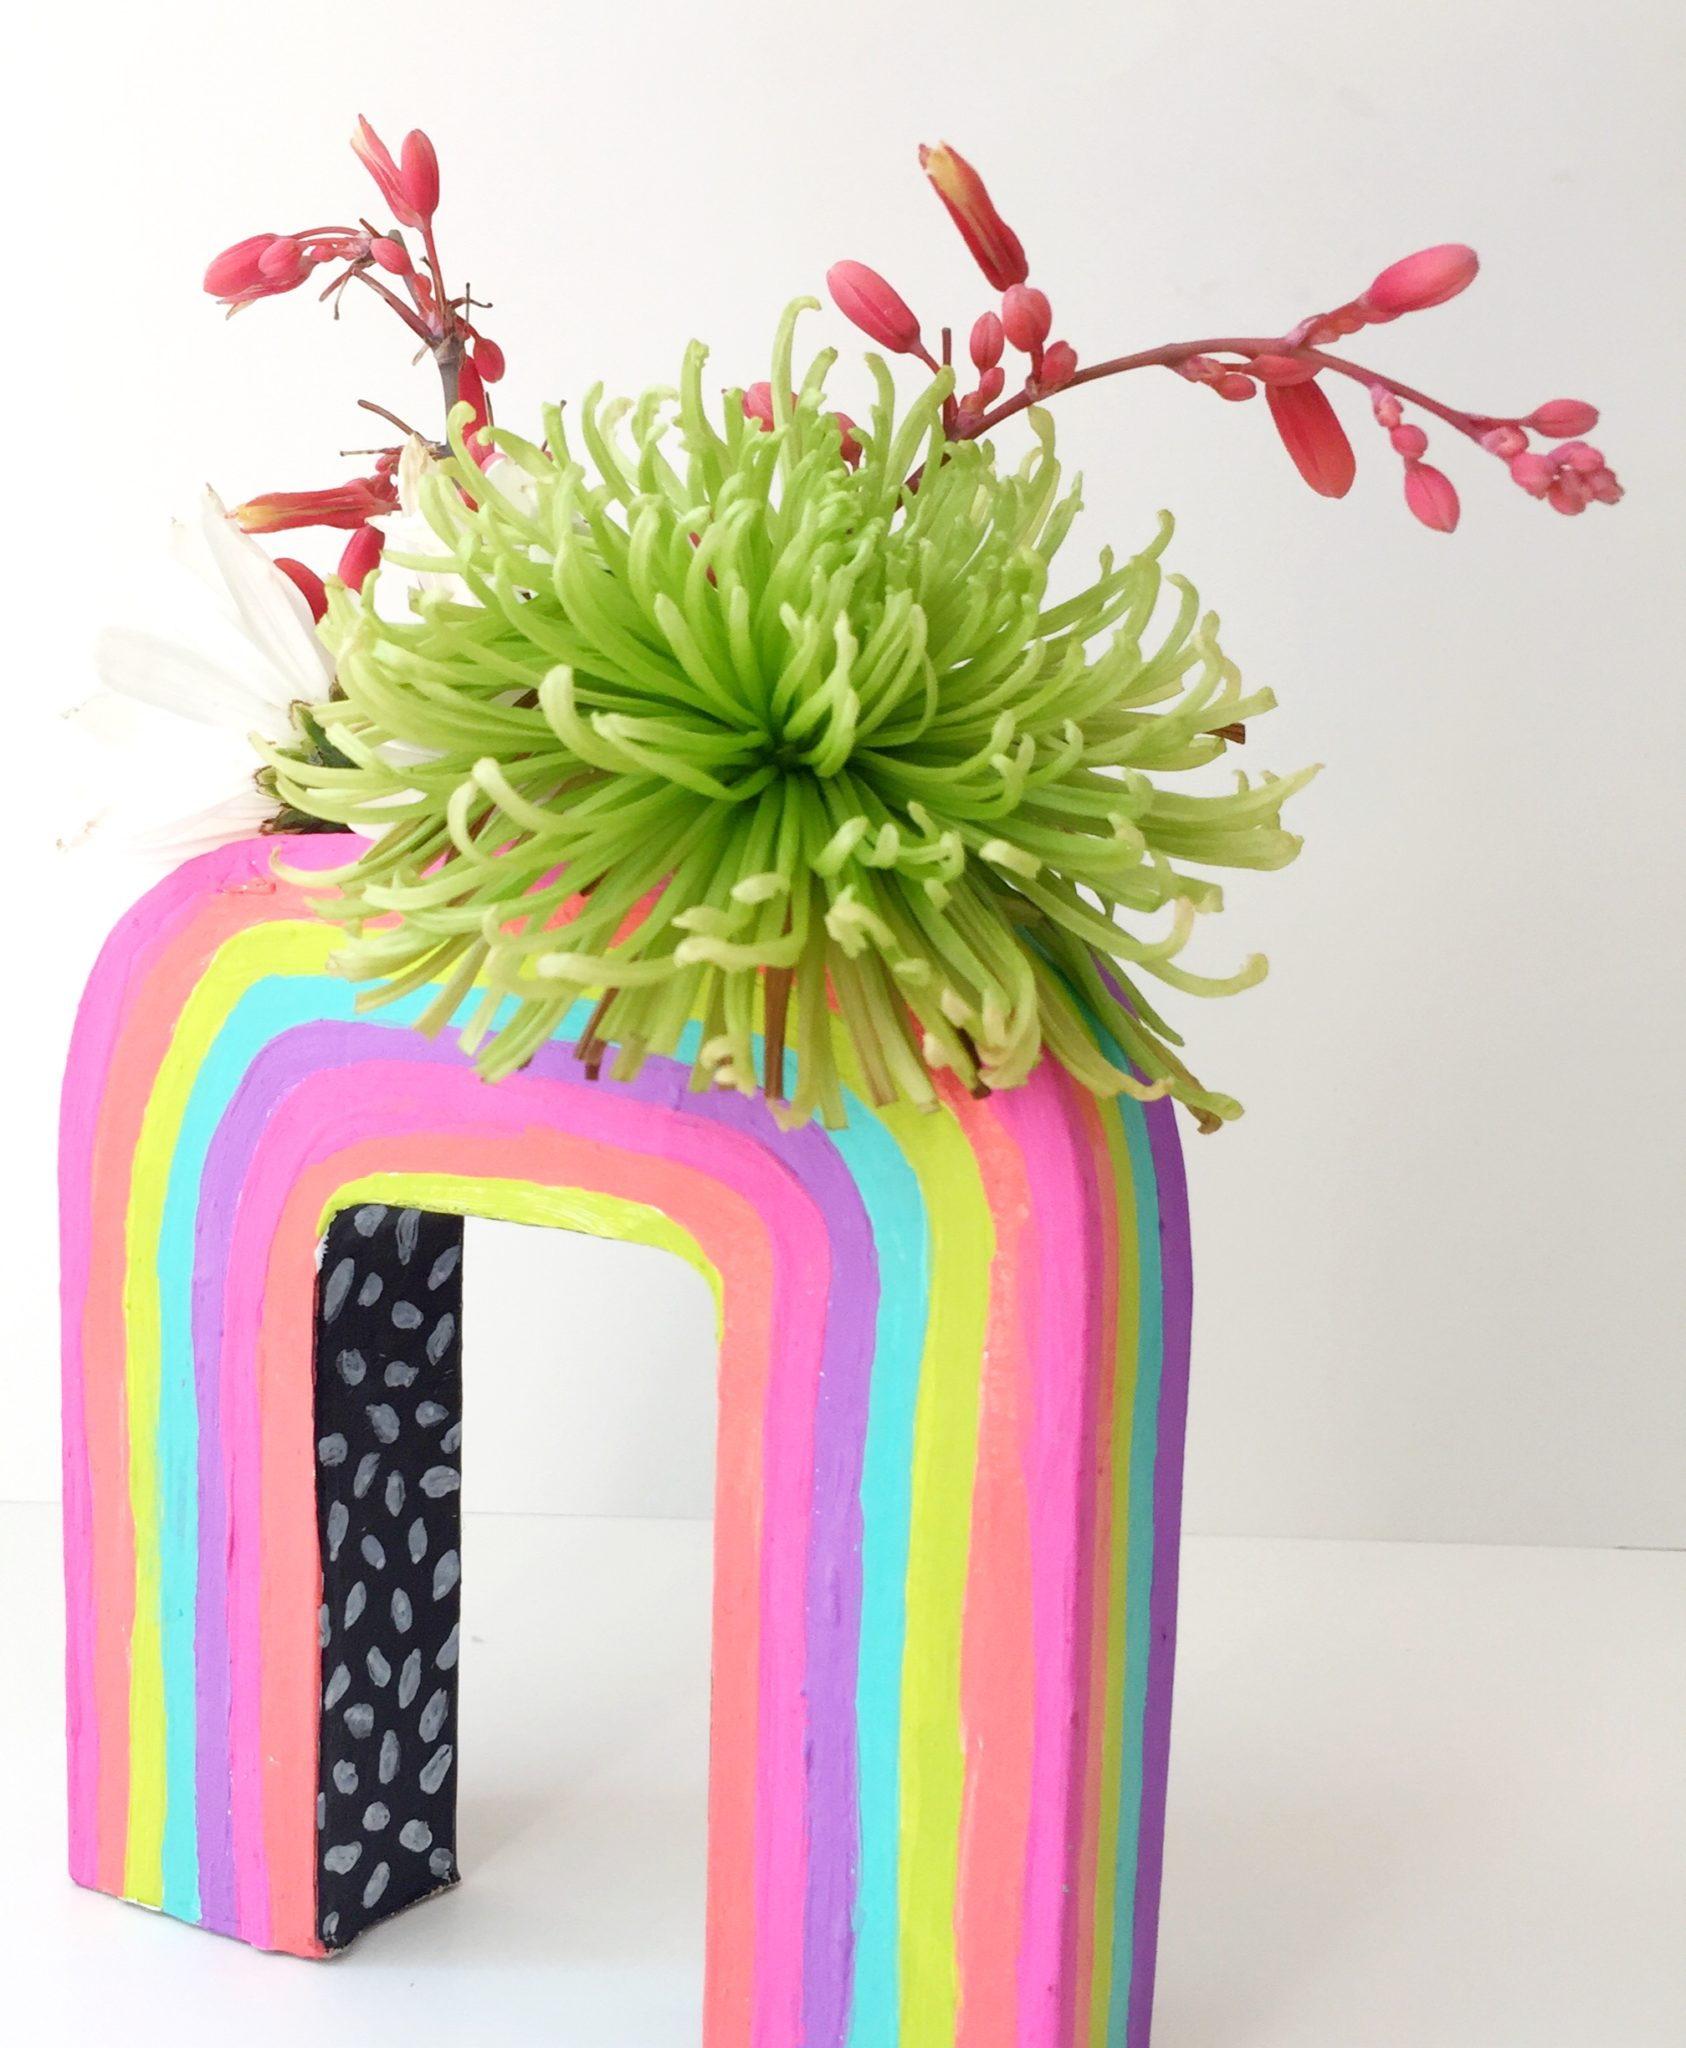 Colorful rainbow vase from a cardboard letter U by Jennifer Perkins